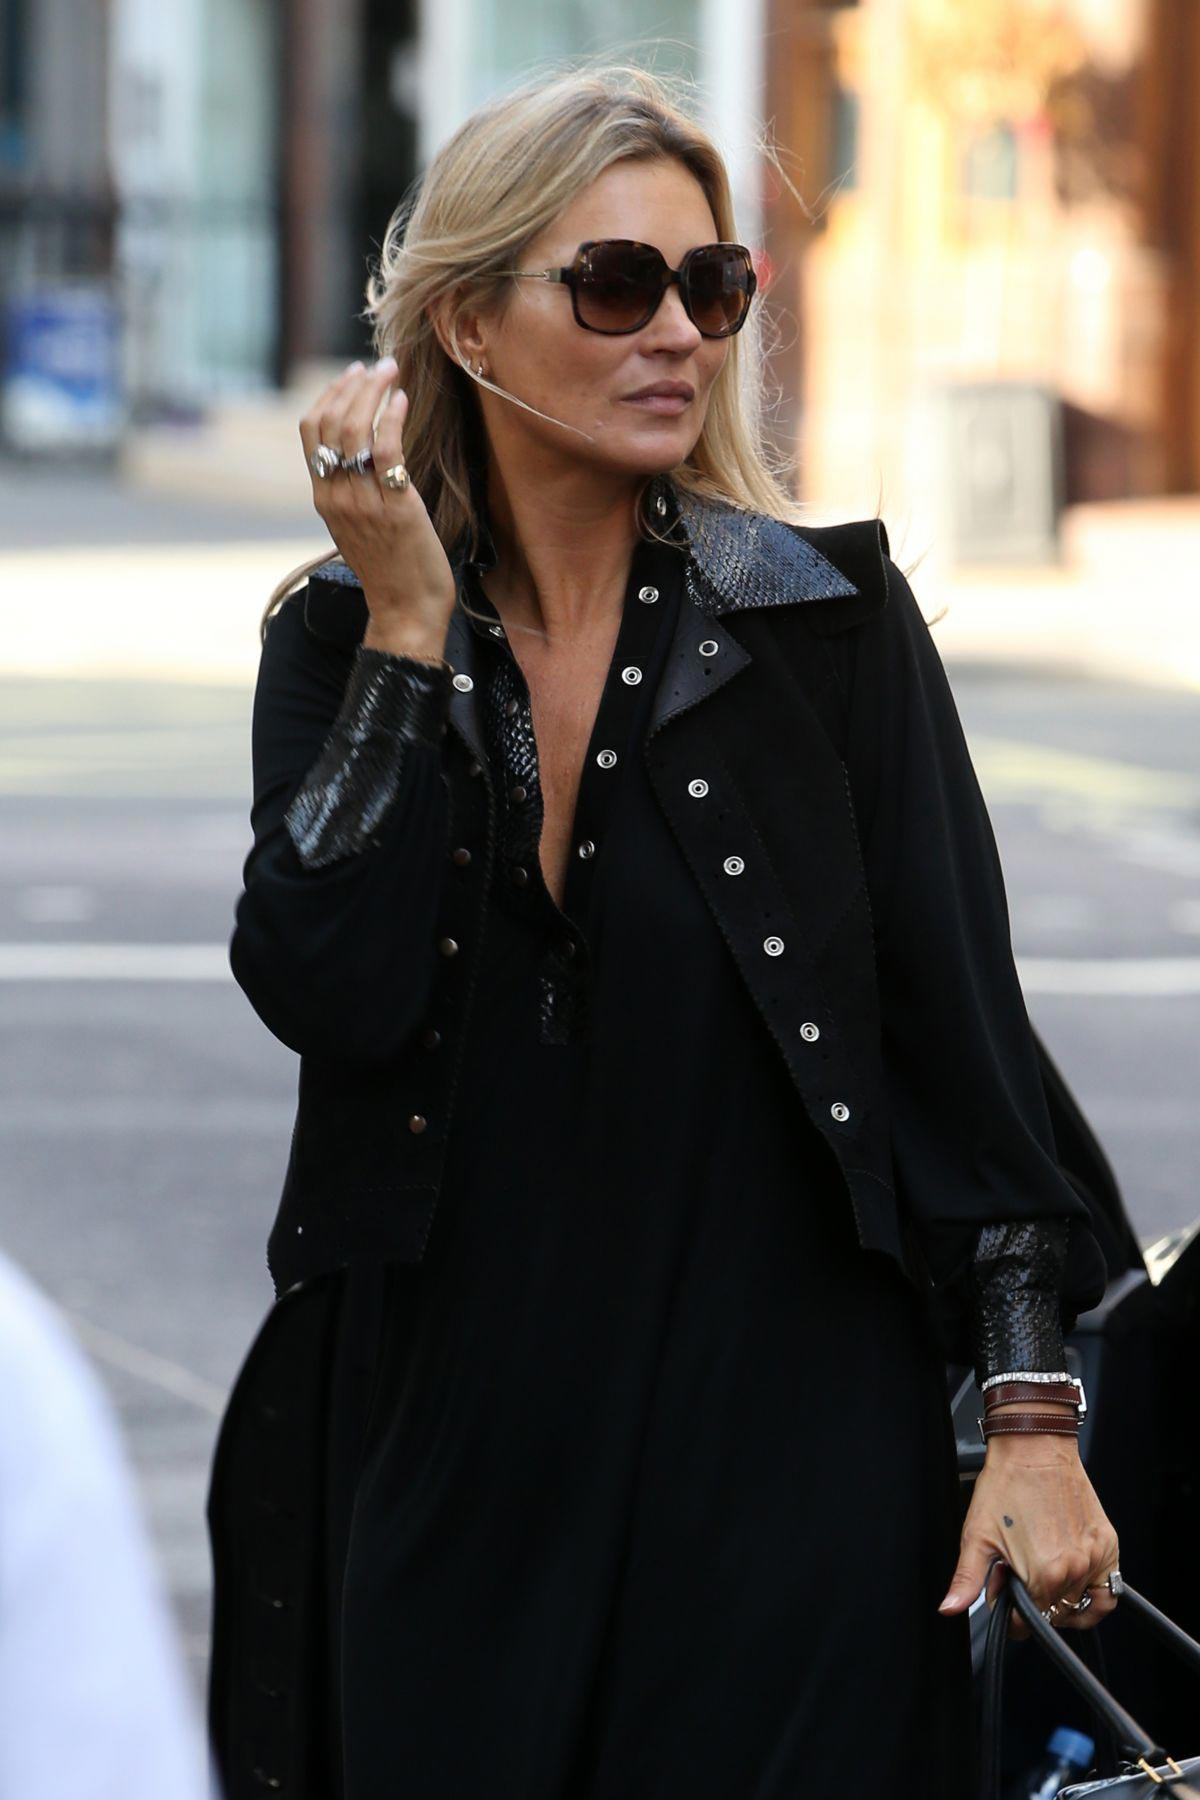 Kate Moss and Lila Moss Out and About in London 2018/10/11 ...